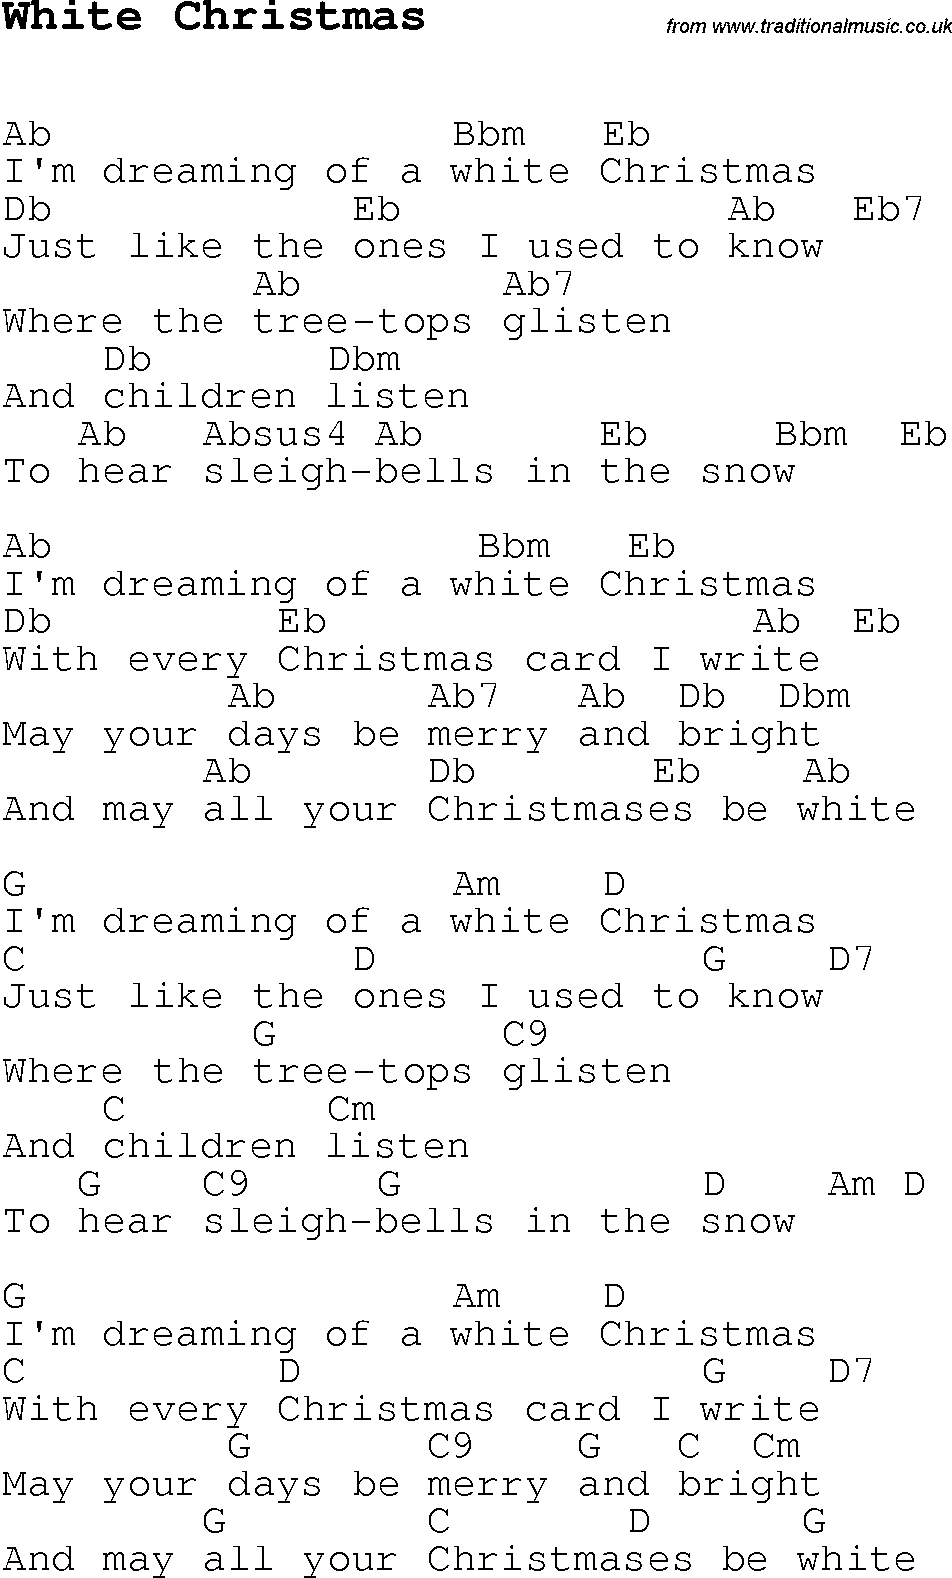 White Christmas Chords Christmas Carolsong Lyrics With Chords For White Christmas